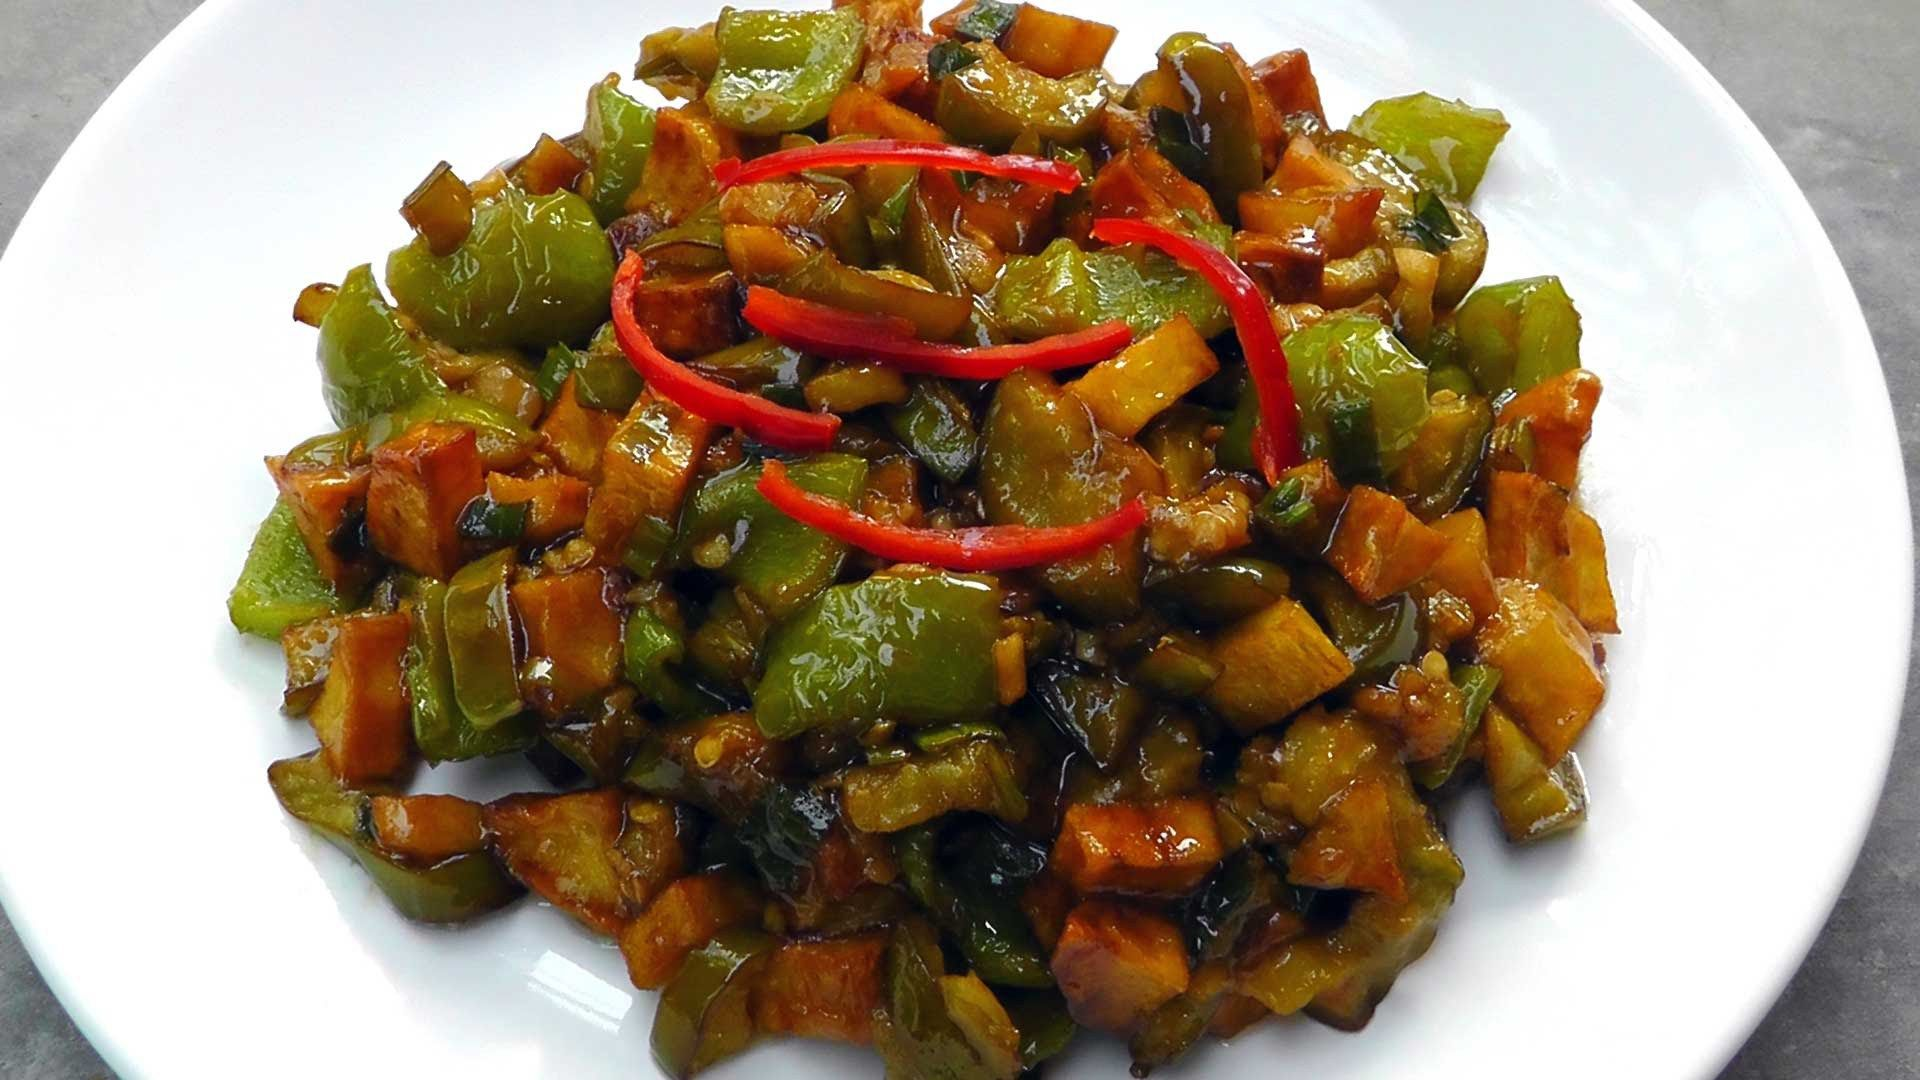 Vegan vegetarian chinese recipe di san xian httpquick1ykh vegetarian vegan chinese recipe di san xian fried potatoes eggplant and bell pepper food ingredients 1 eggplant cut 1 cup potatoes peeled and cut 1 forumfinder Image collections